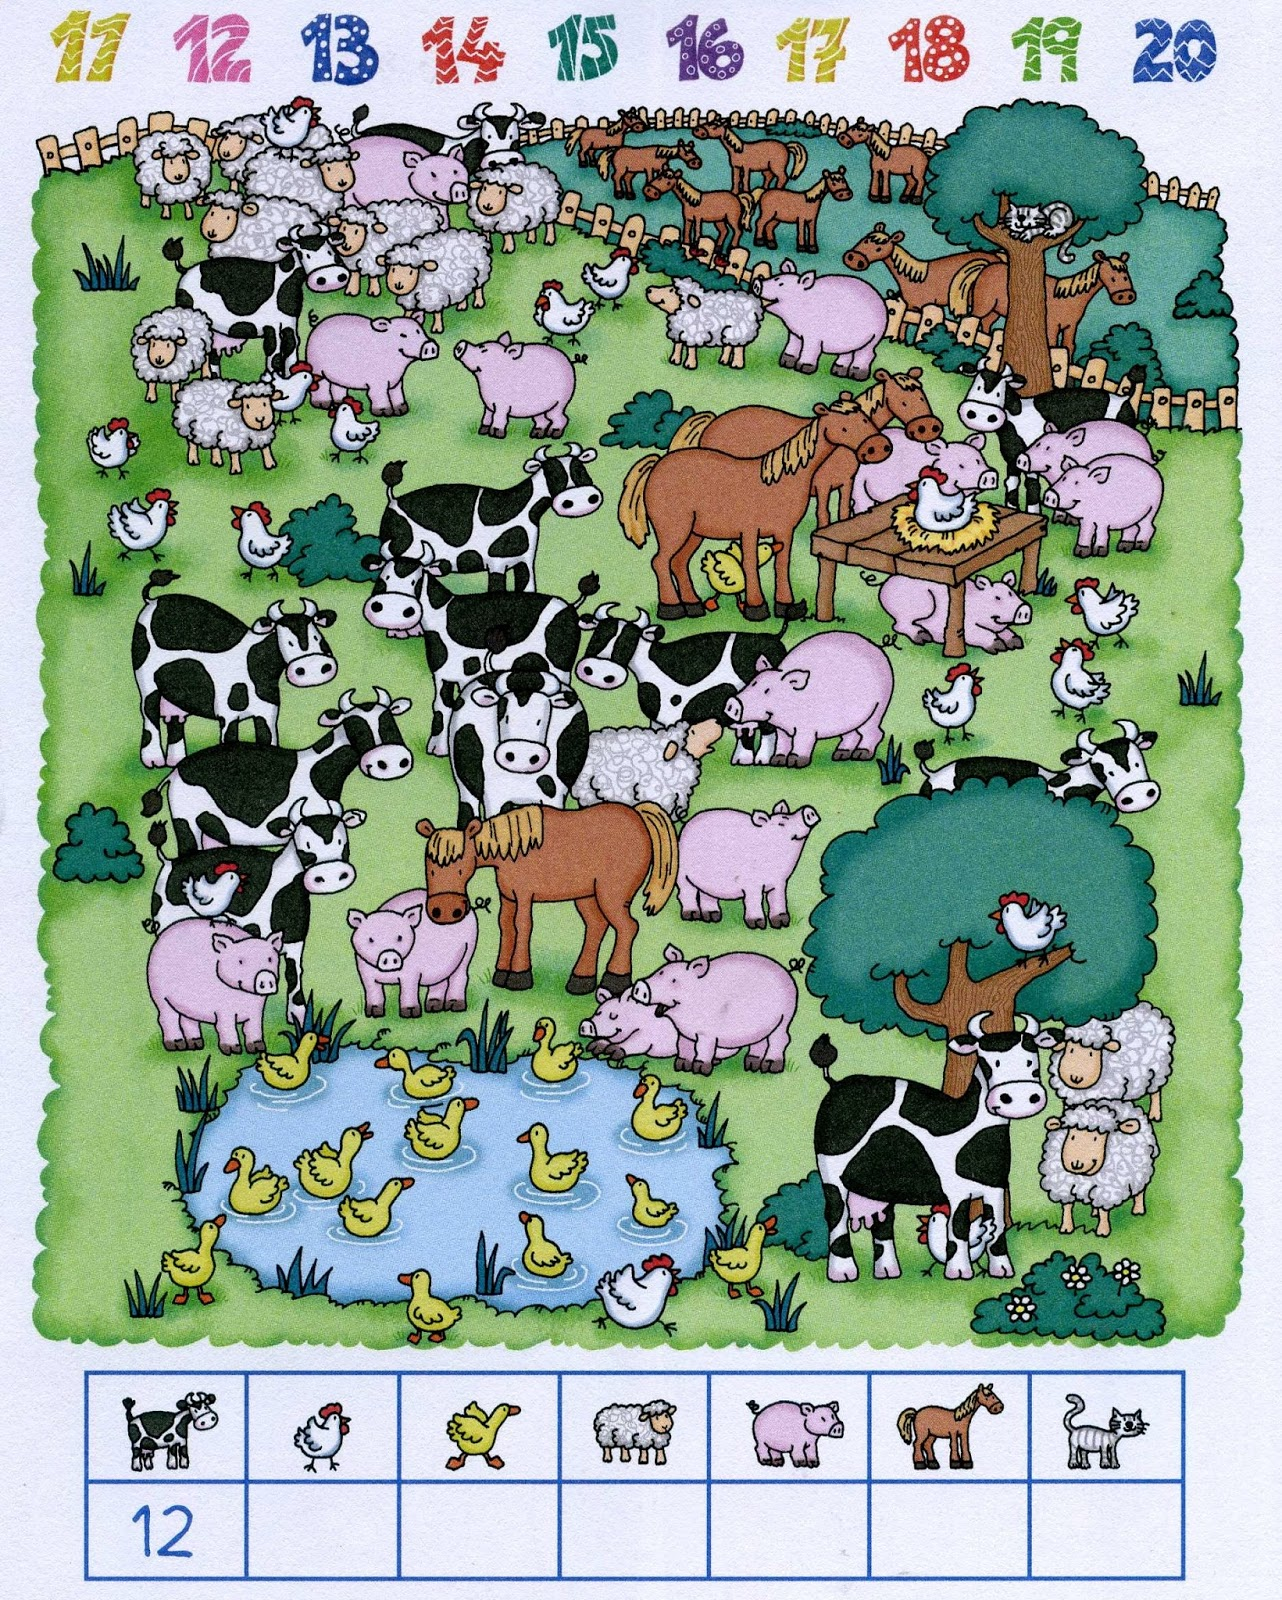 Baby potatoes: Counting farm animals